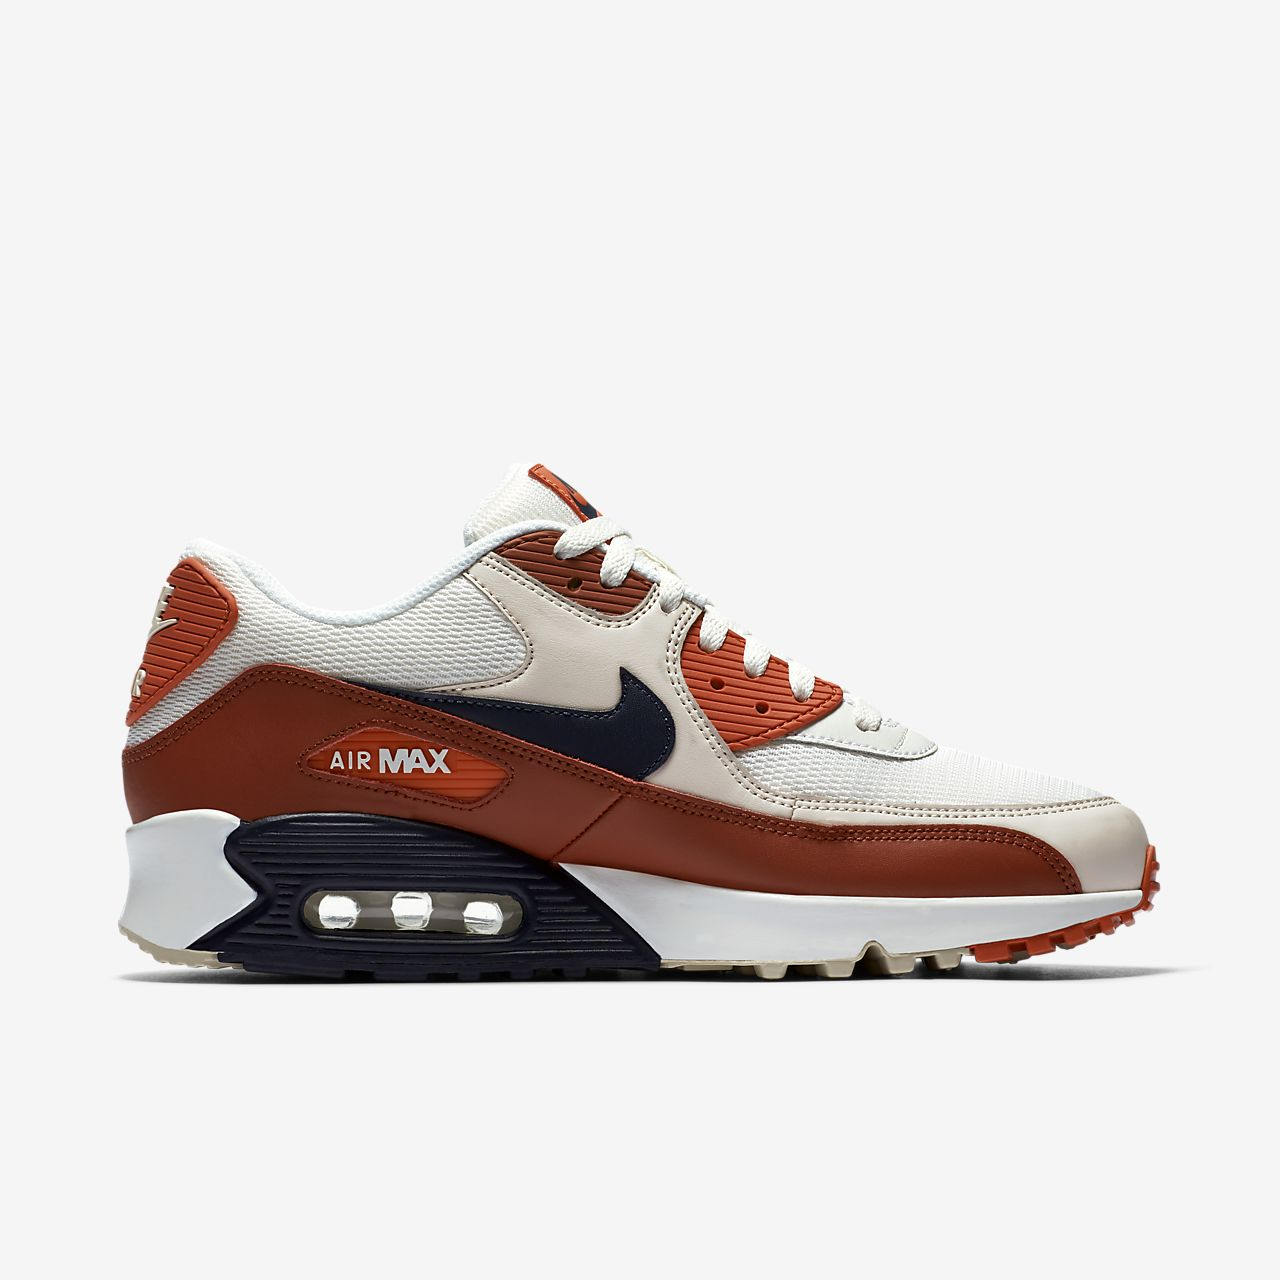 en soldes 5f5ba a0554 Nike Sneakers Online at Best Prices | Backalleymusic.ca